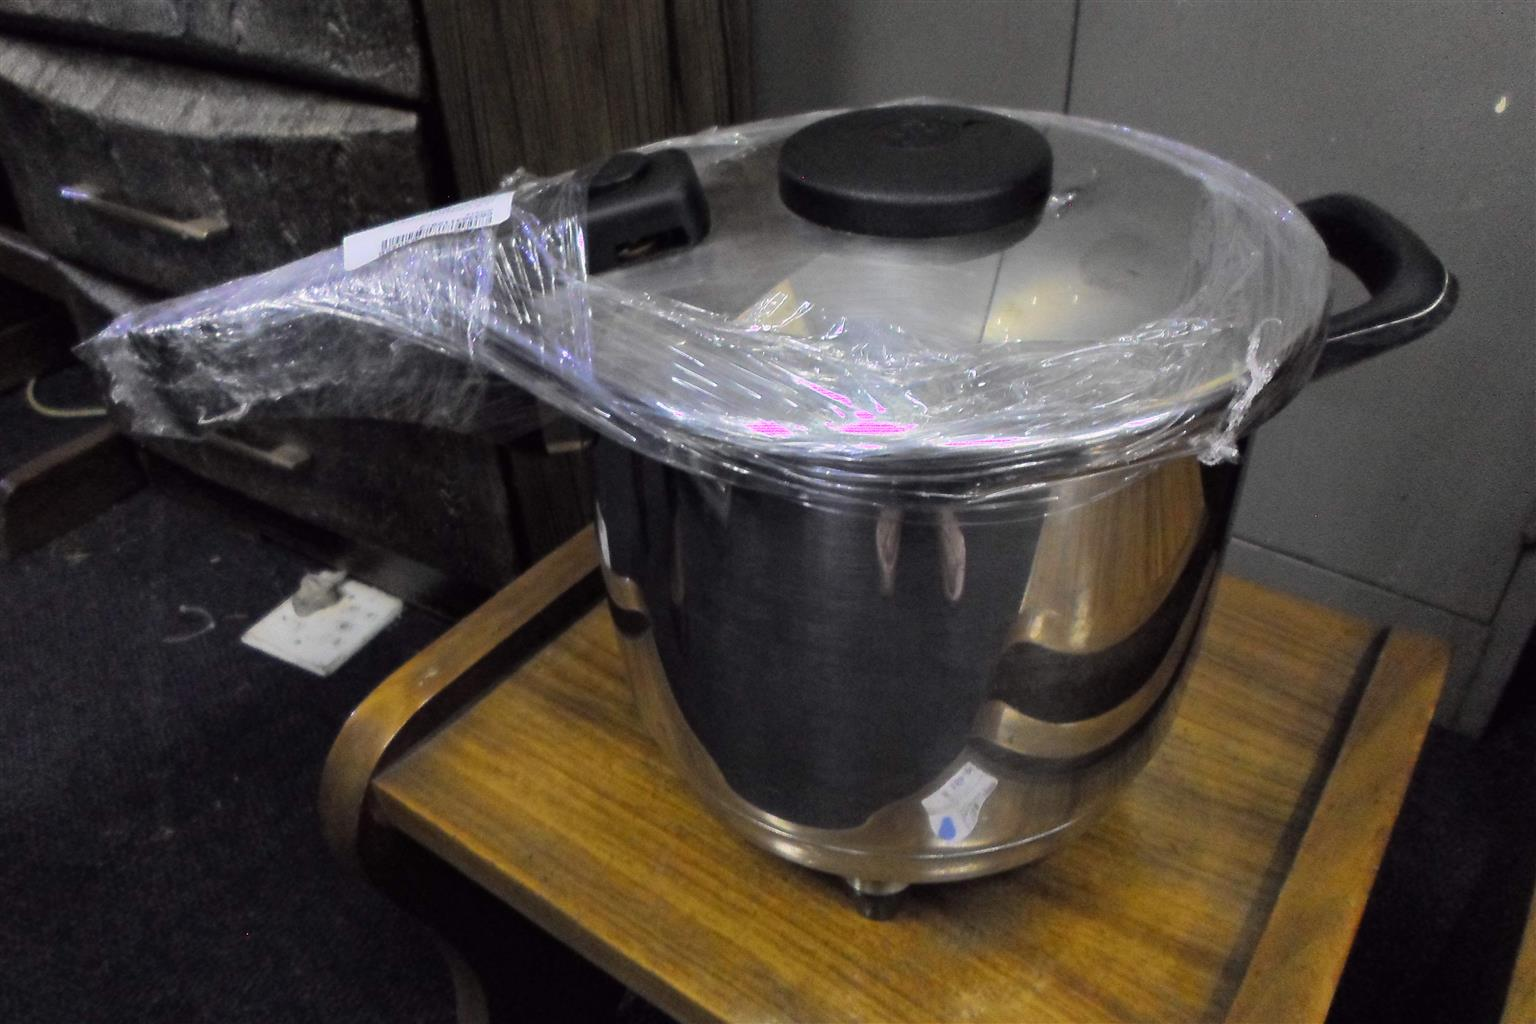 AMC Electric Pressure Cooker